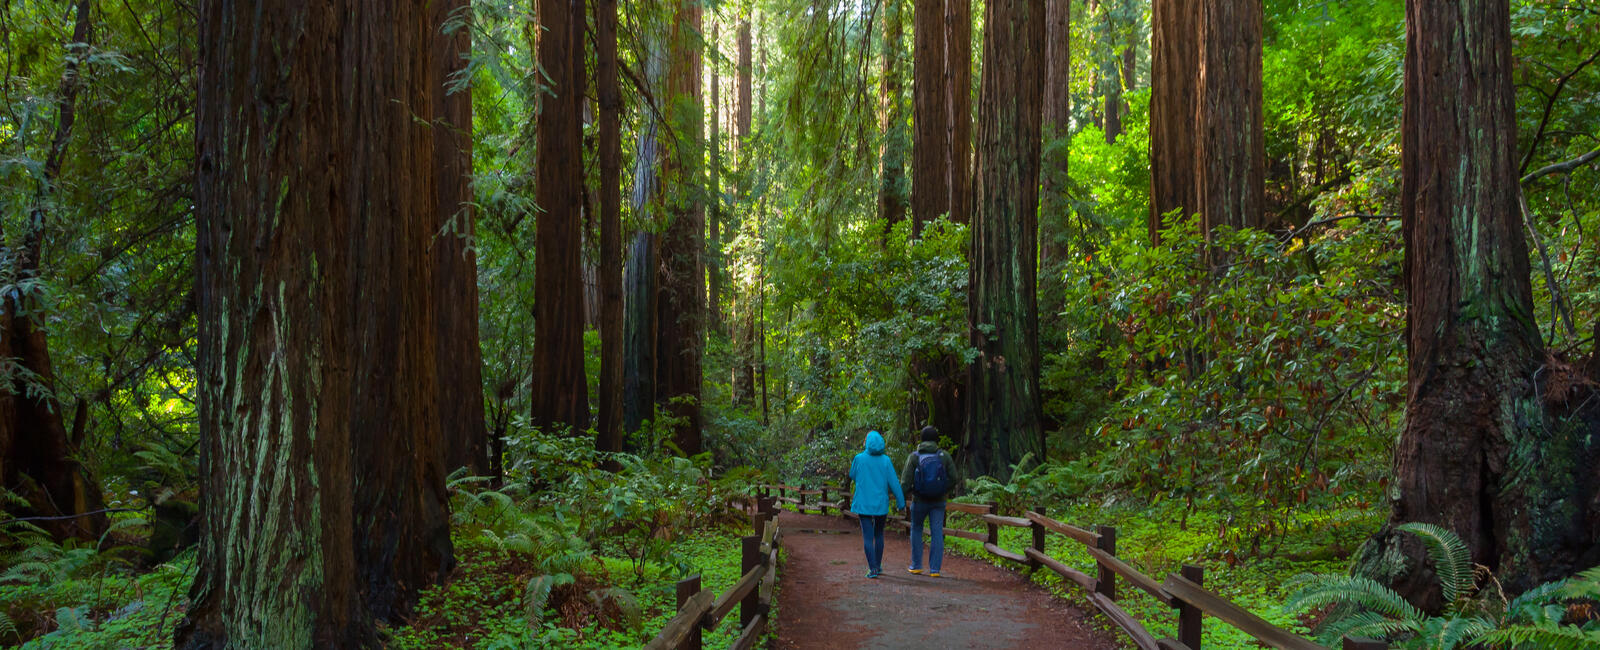 People walking in Muir Woods